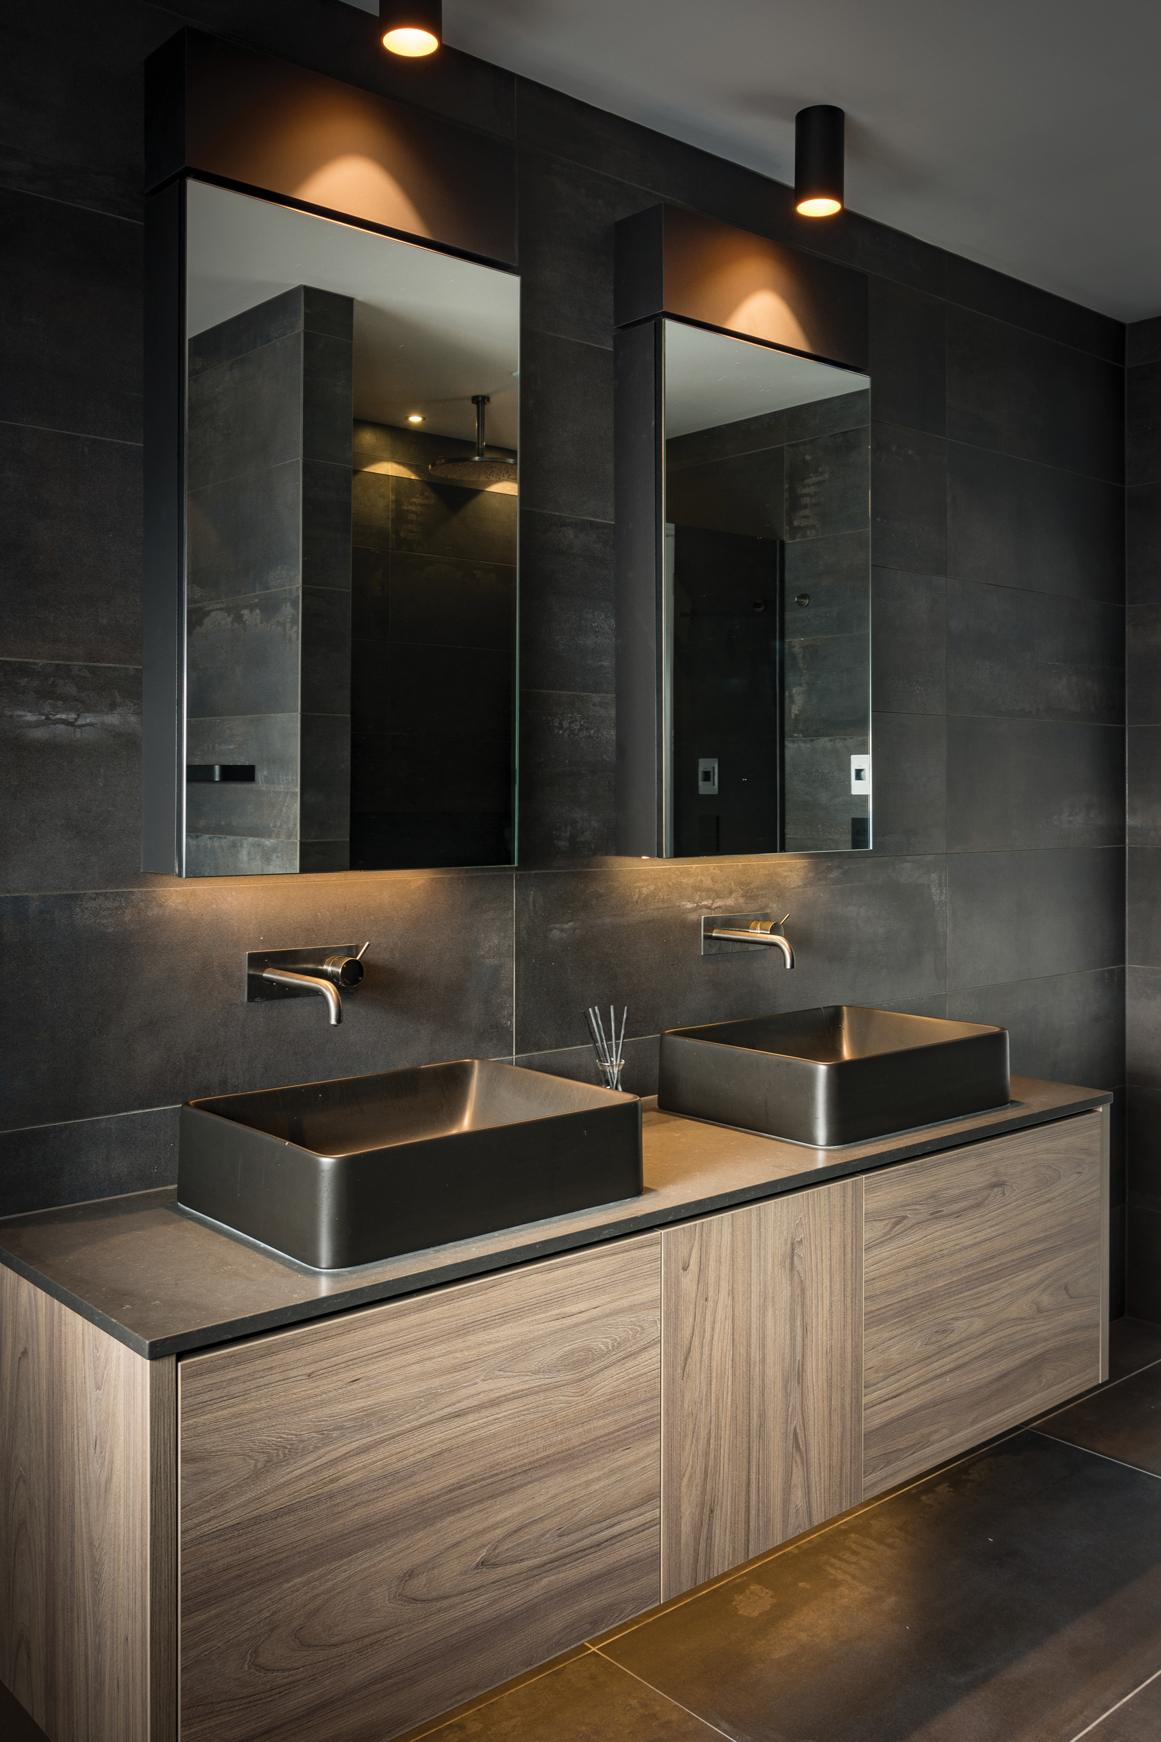 BATHROOM:  The boys' bathroom has Tondo rectangular Vessel basins in matte black with Buddy wall-mounted mixers in aged iron. The custom vanity is finished in Dusky Elm with benchtop in Caesarstone Raven.